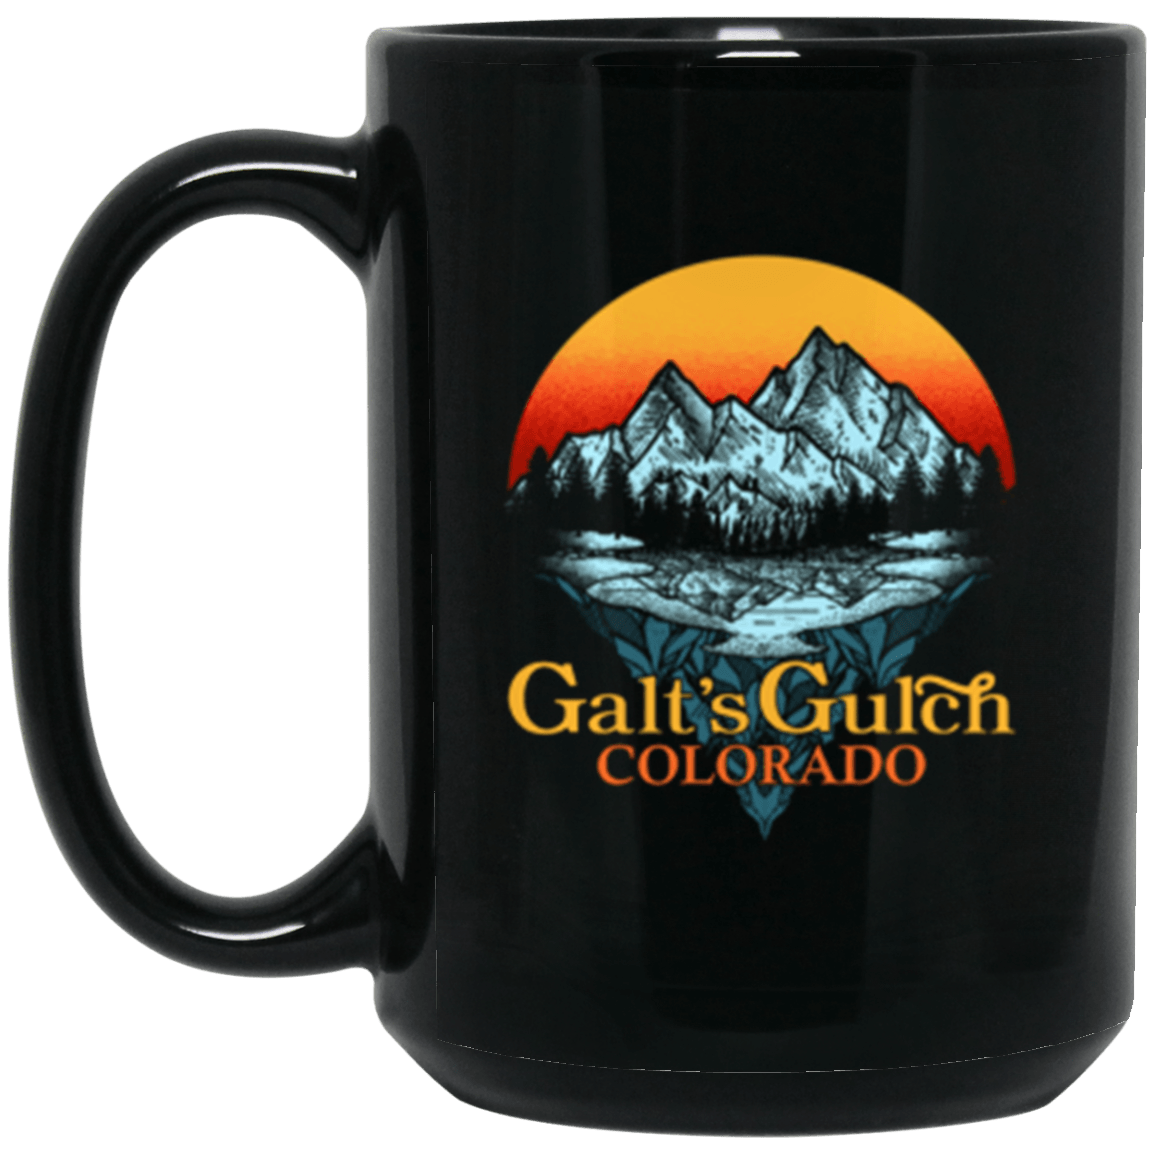 Galt's Gulch Black Mug 15oz (2-sided)